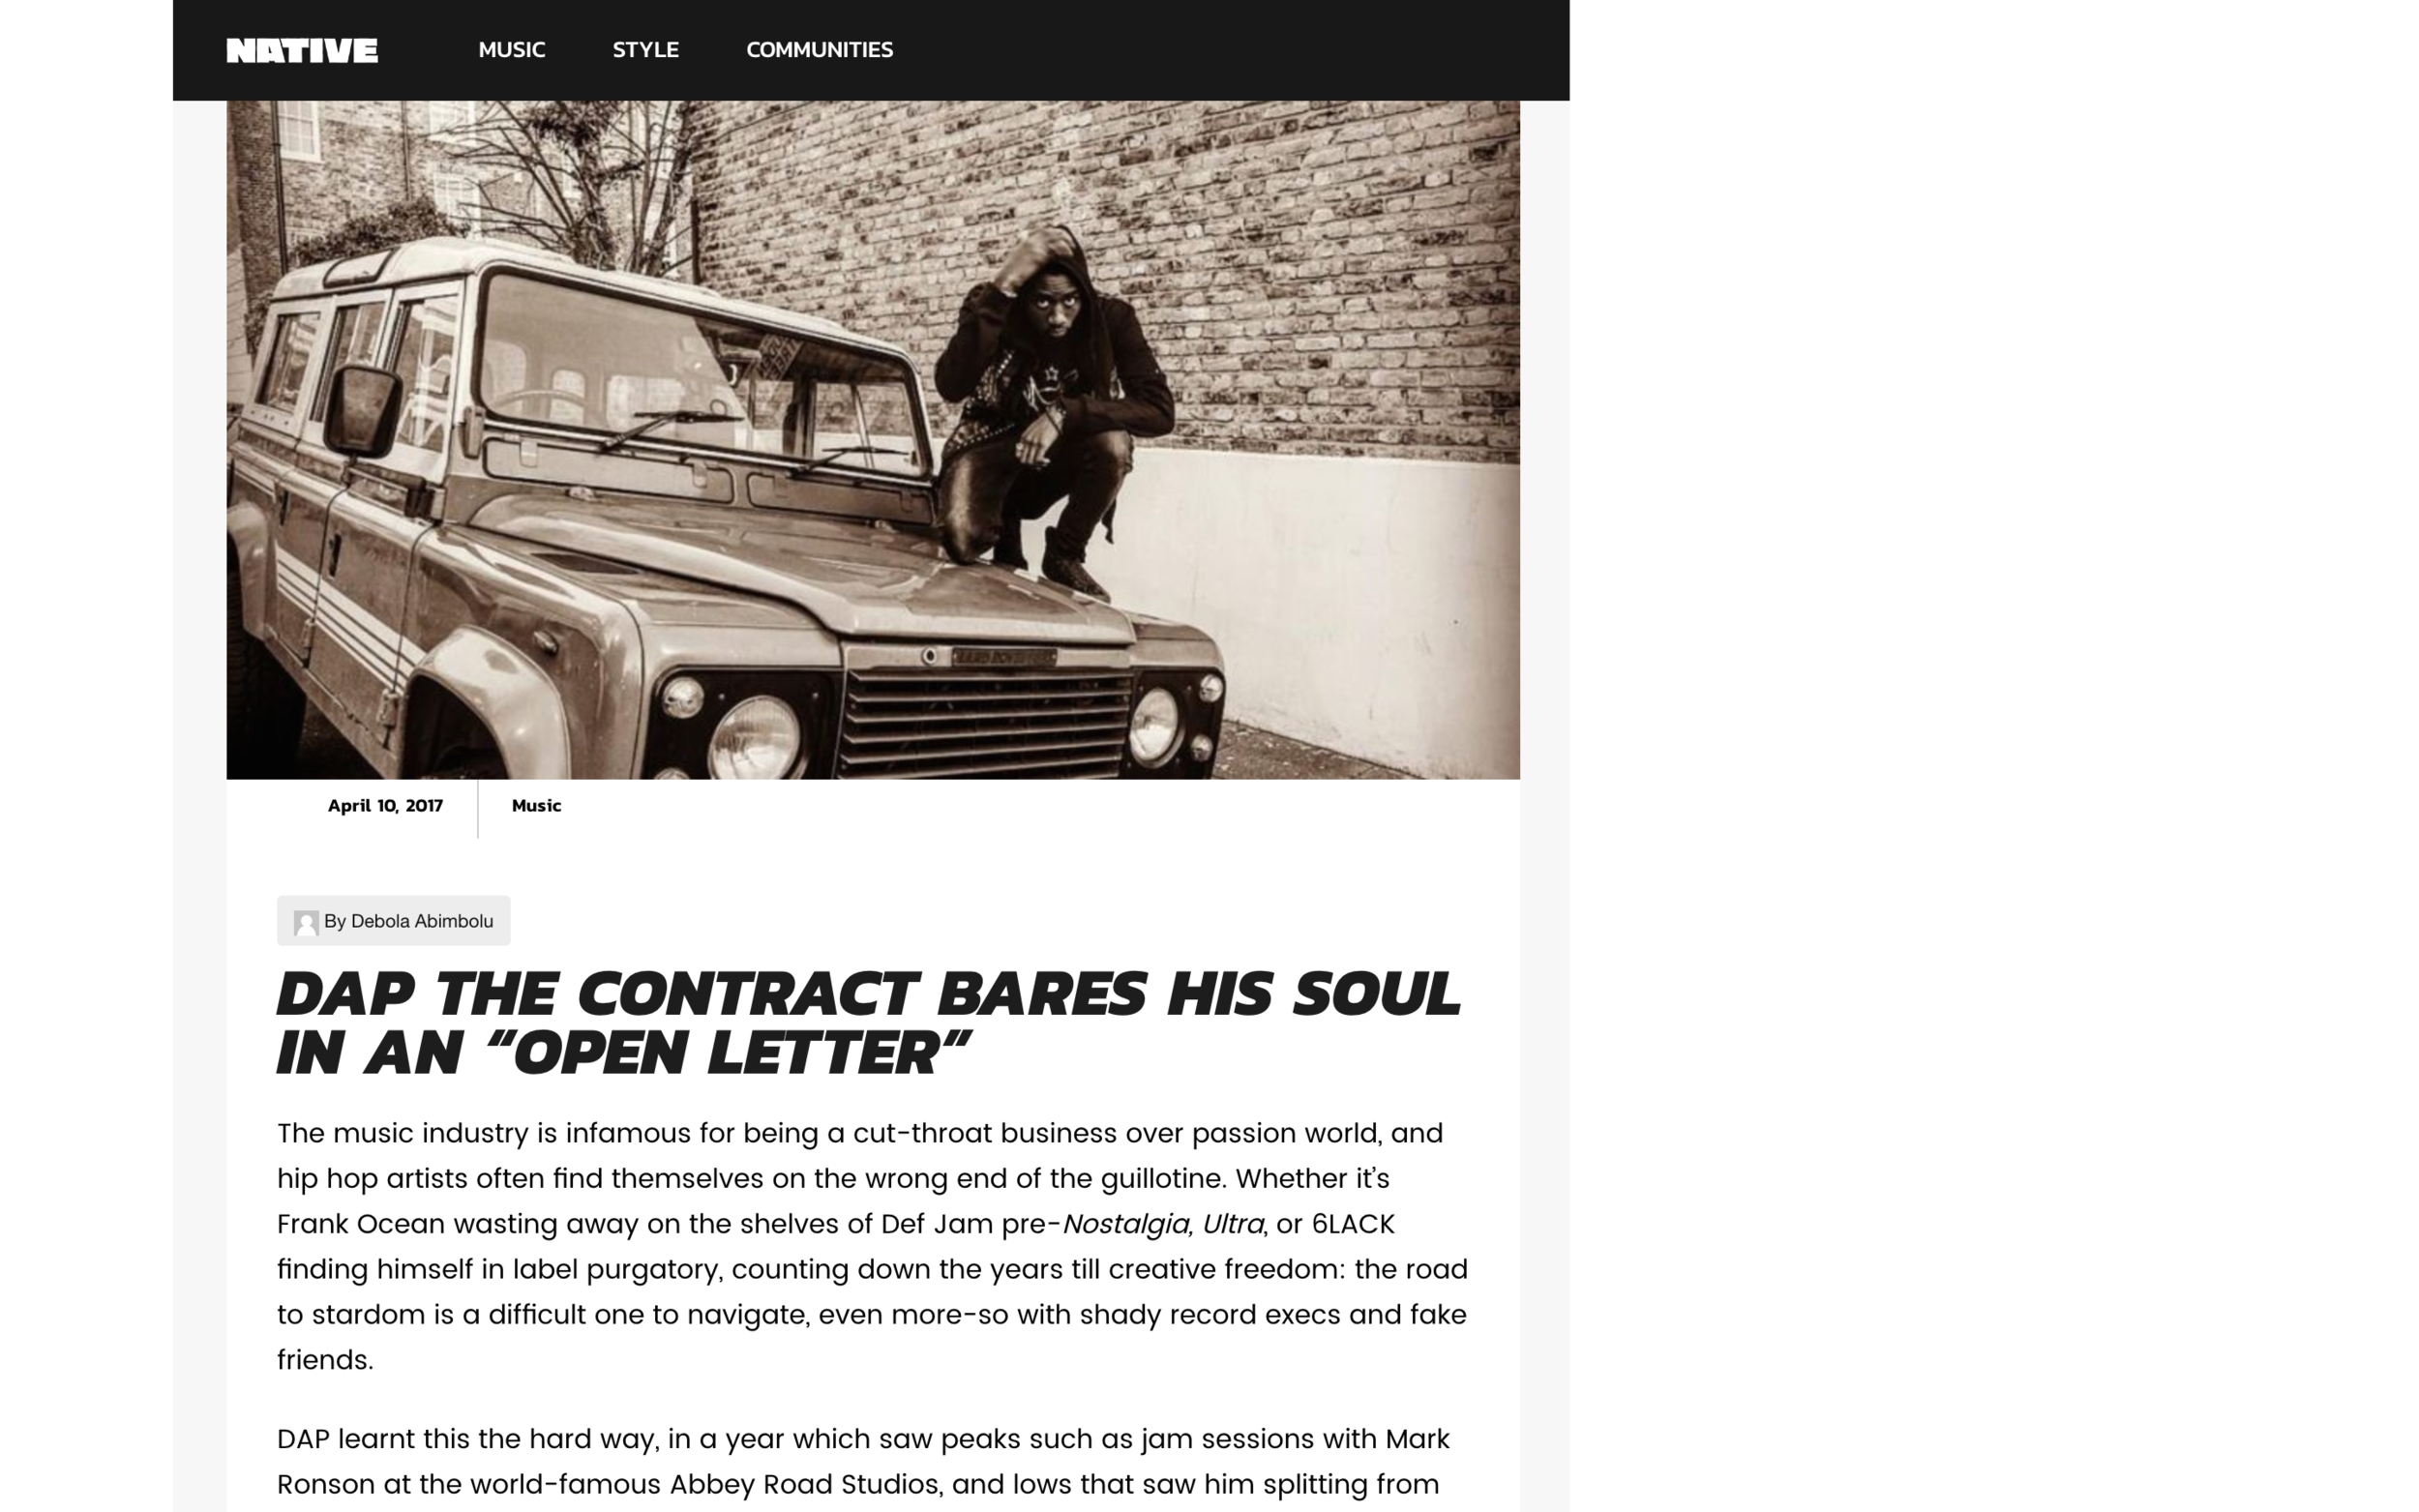 http://thenativemag.com/music/dapthecontract-open-letter/